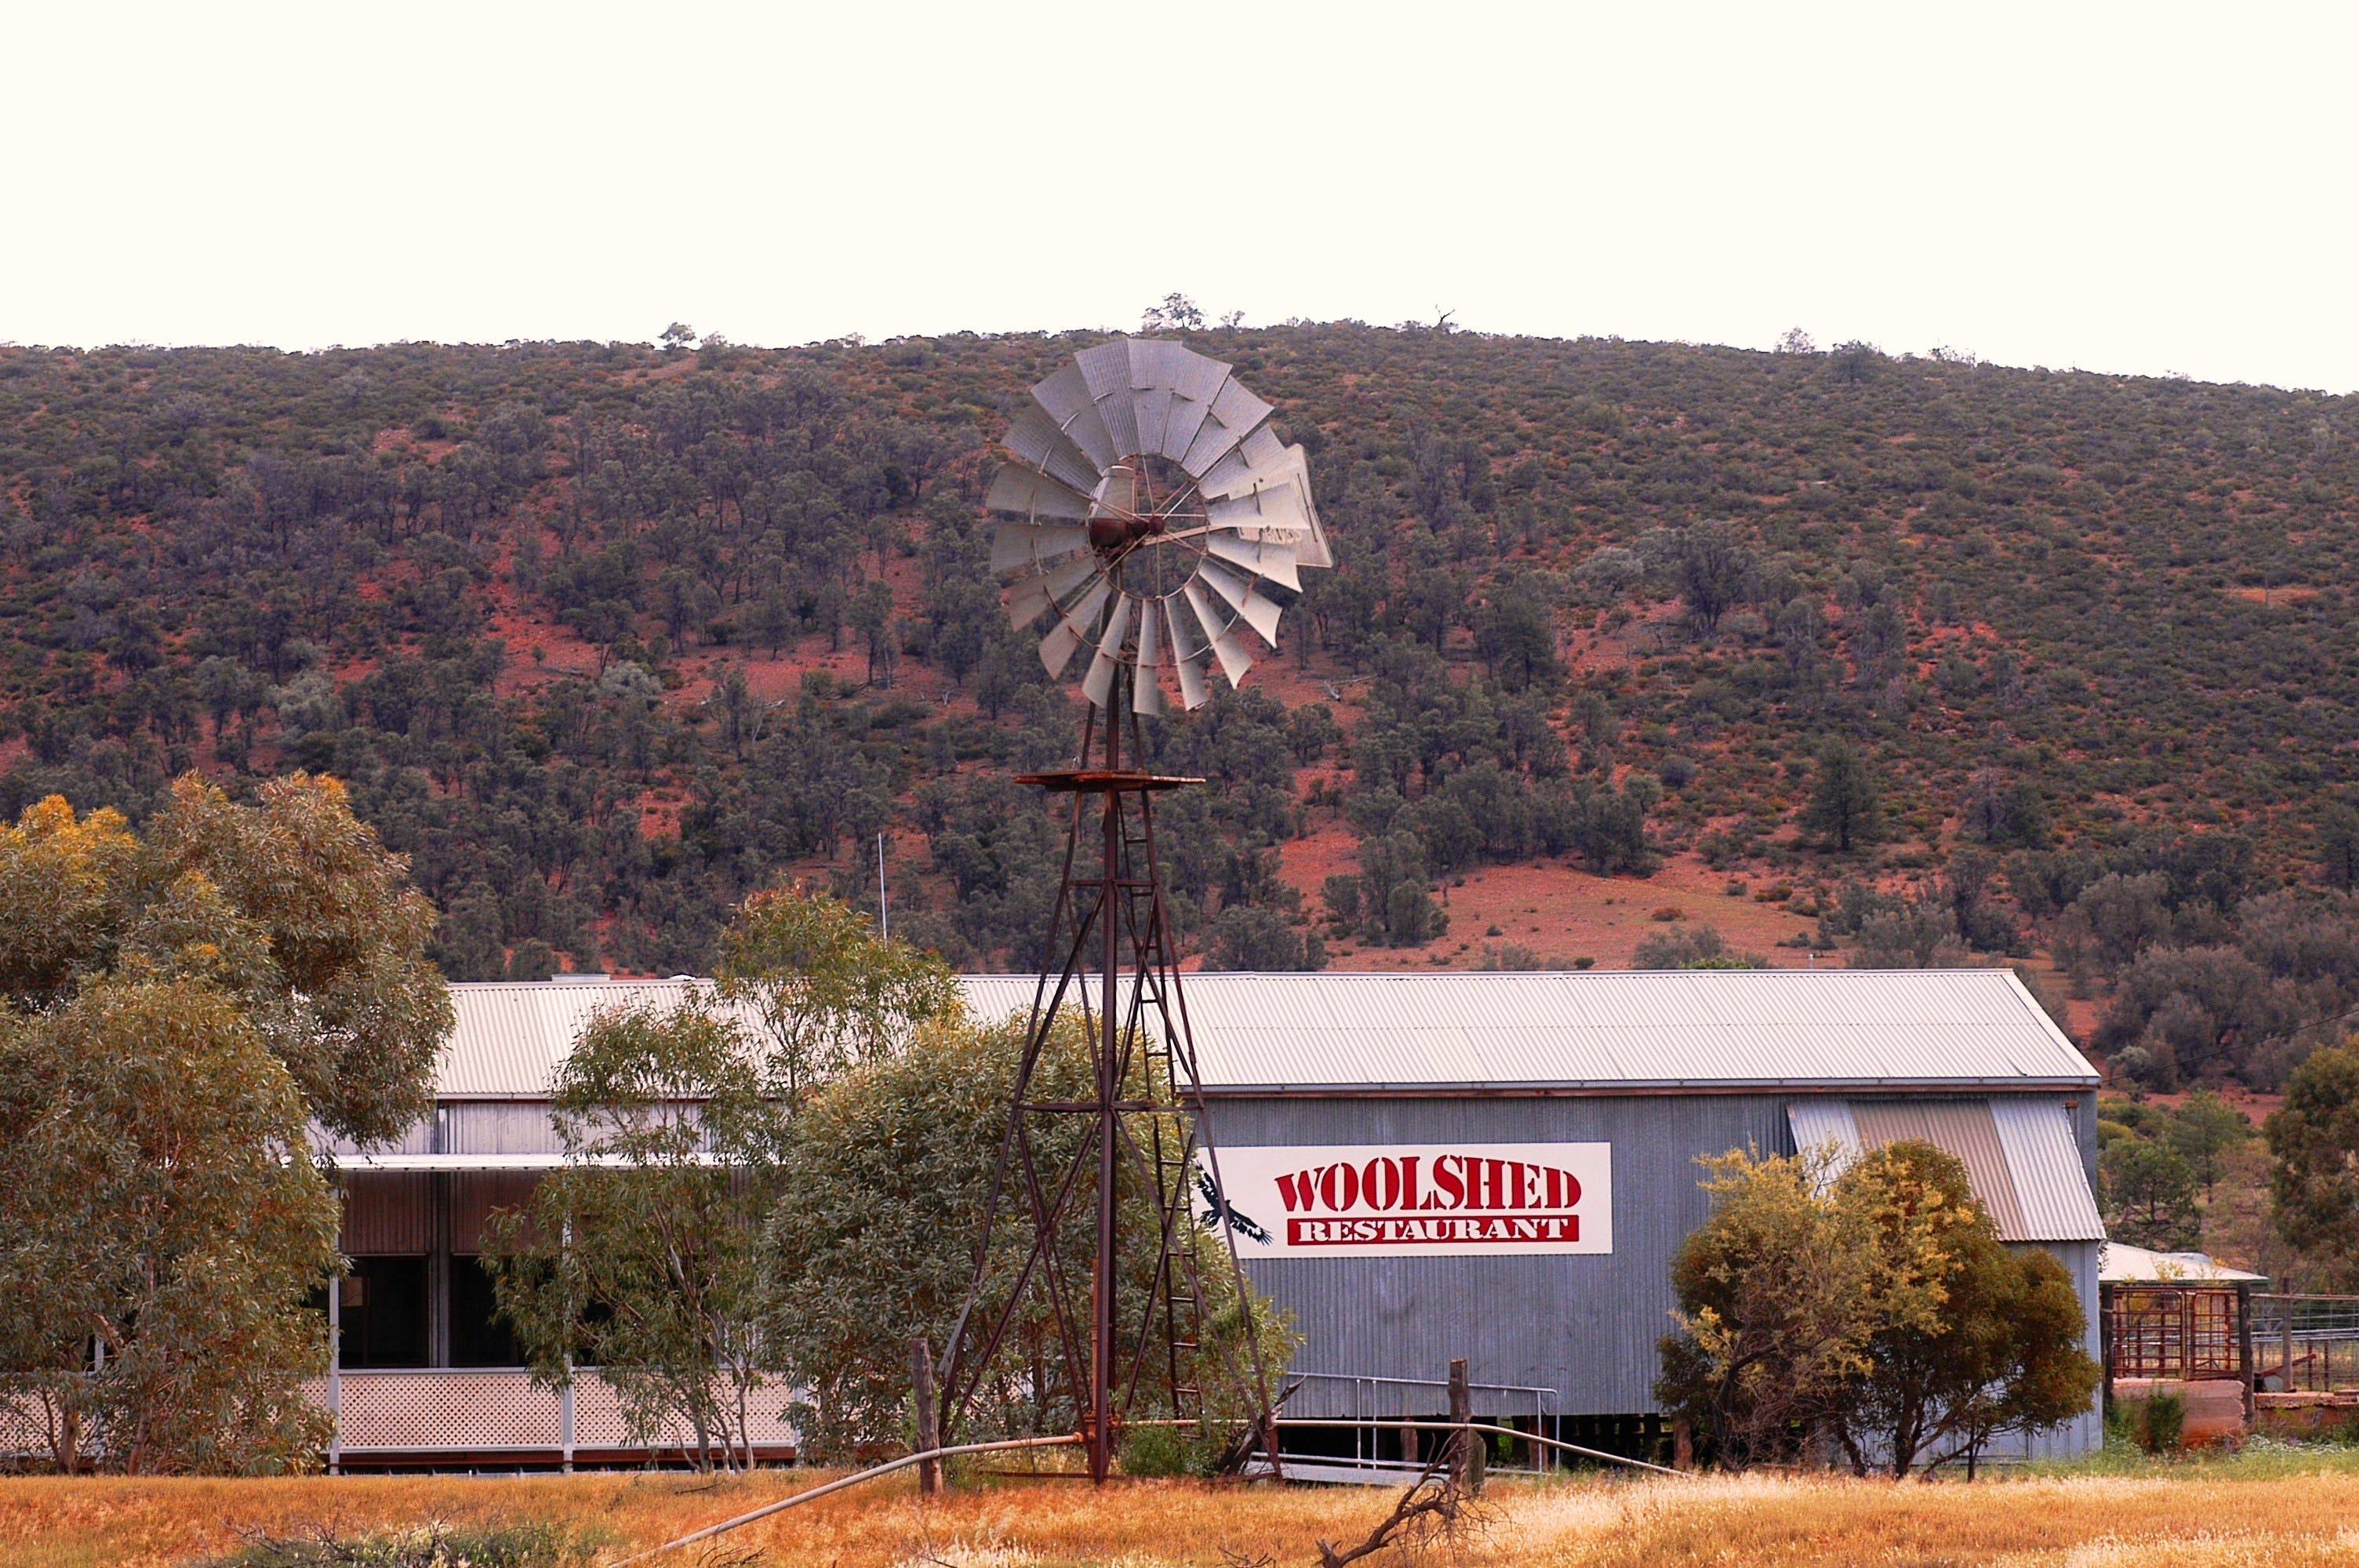 The Woolshed Restaurant at Rawnsley Park - South Australia Travel